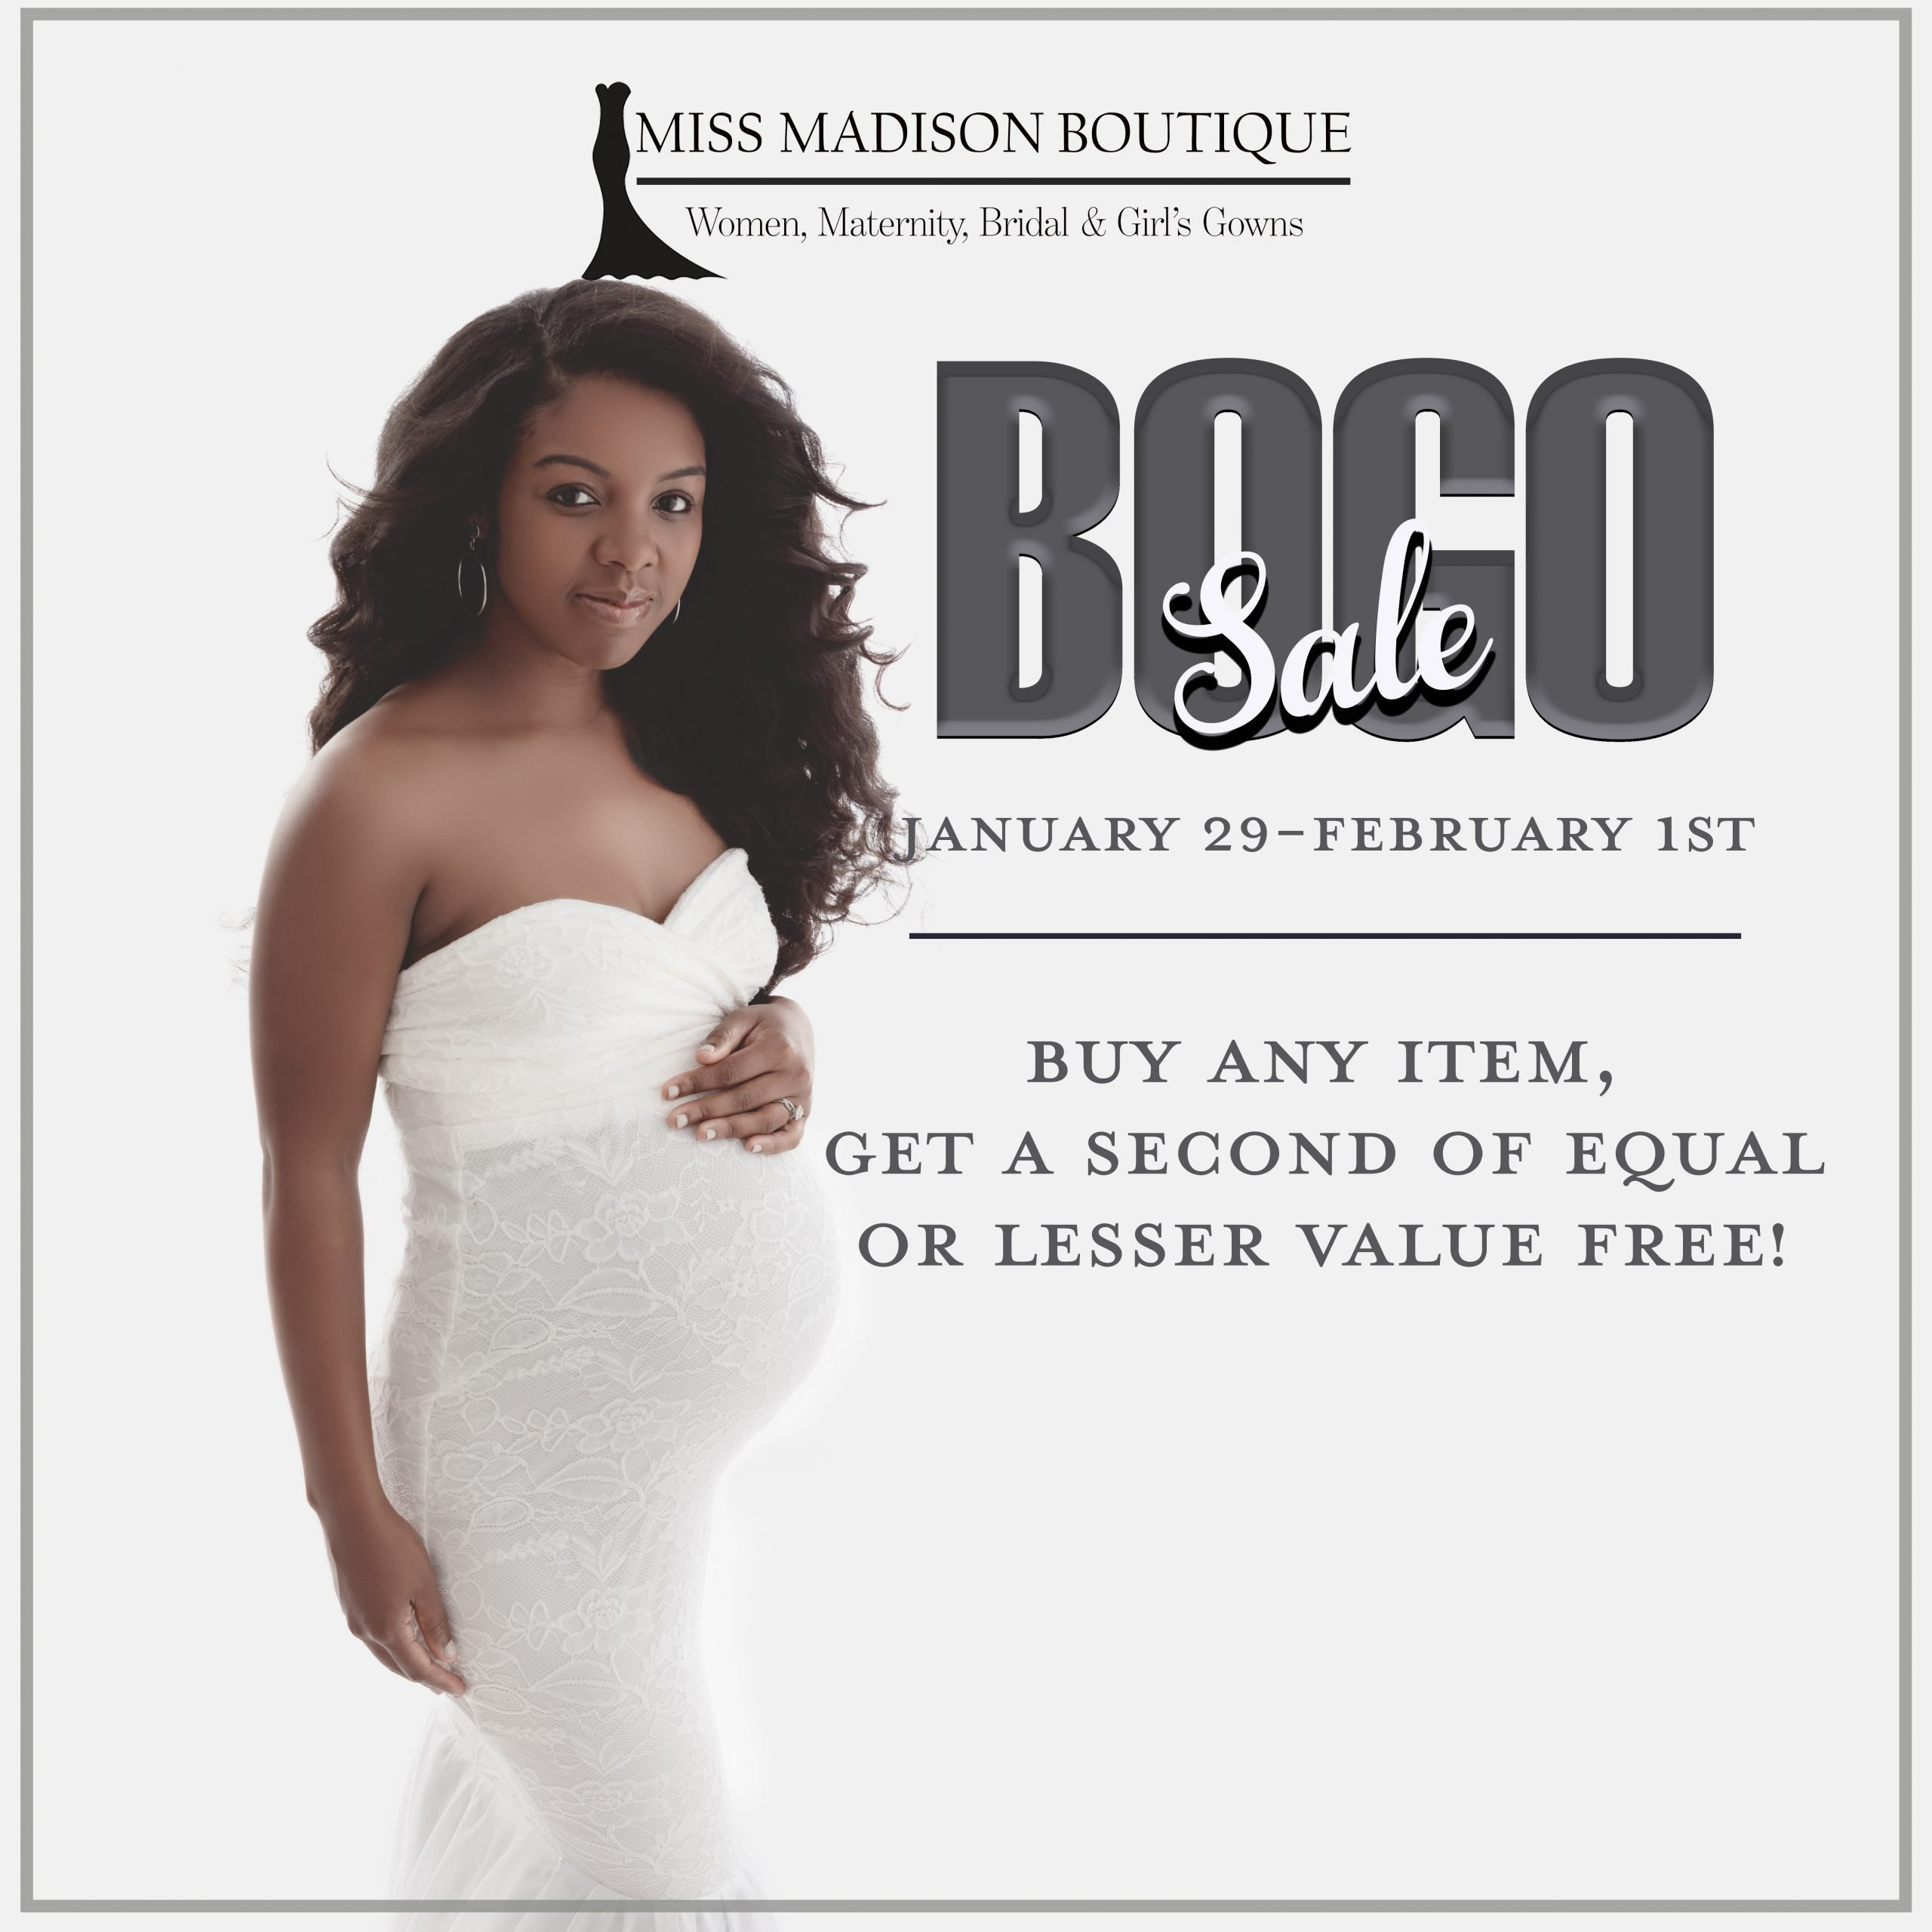 maternity gown sale, Photography, maternity dresses, photoshoot, maternity dress, photography, baby shower dresses, maternity gown, jersey, chiffon, pregnant, women's gowns, women's fashion, sexy maternity dress, maternity gown for photography, maternity gown for photoshoot